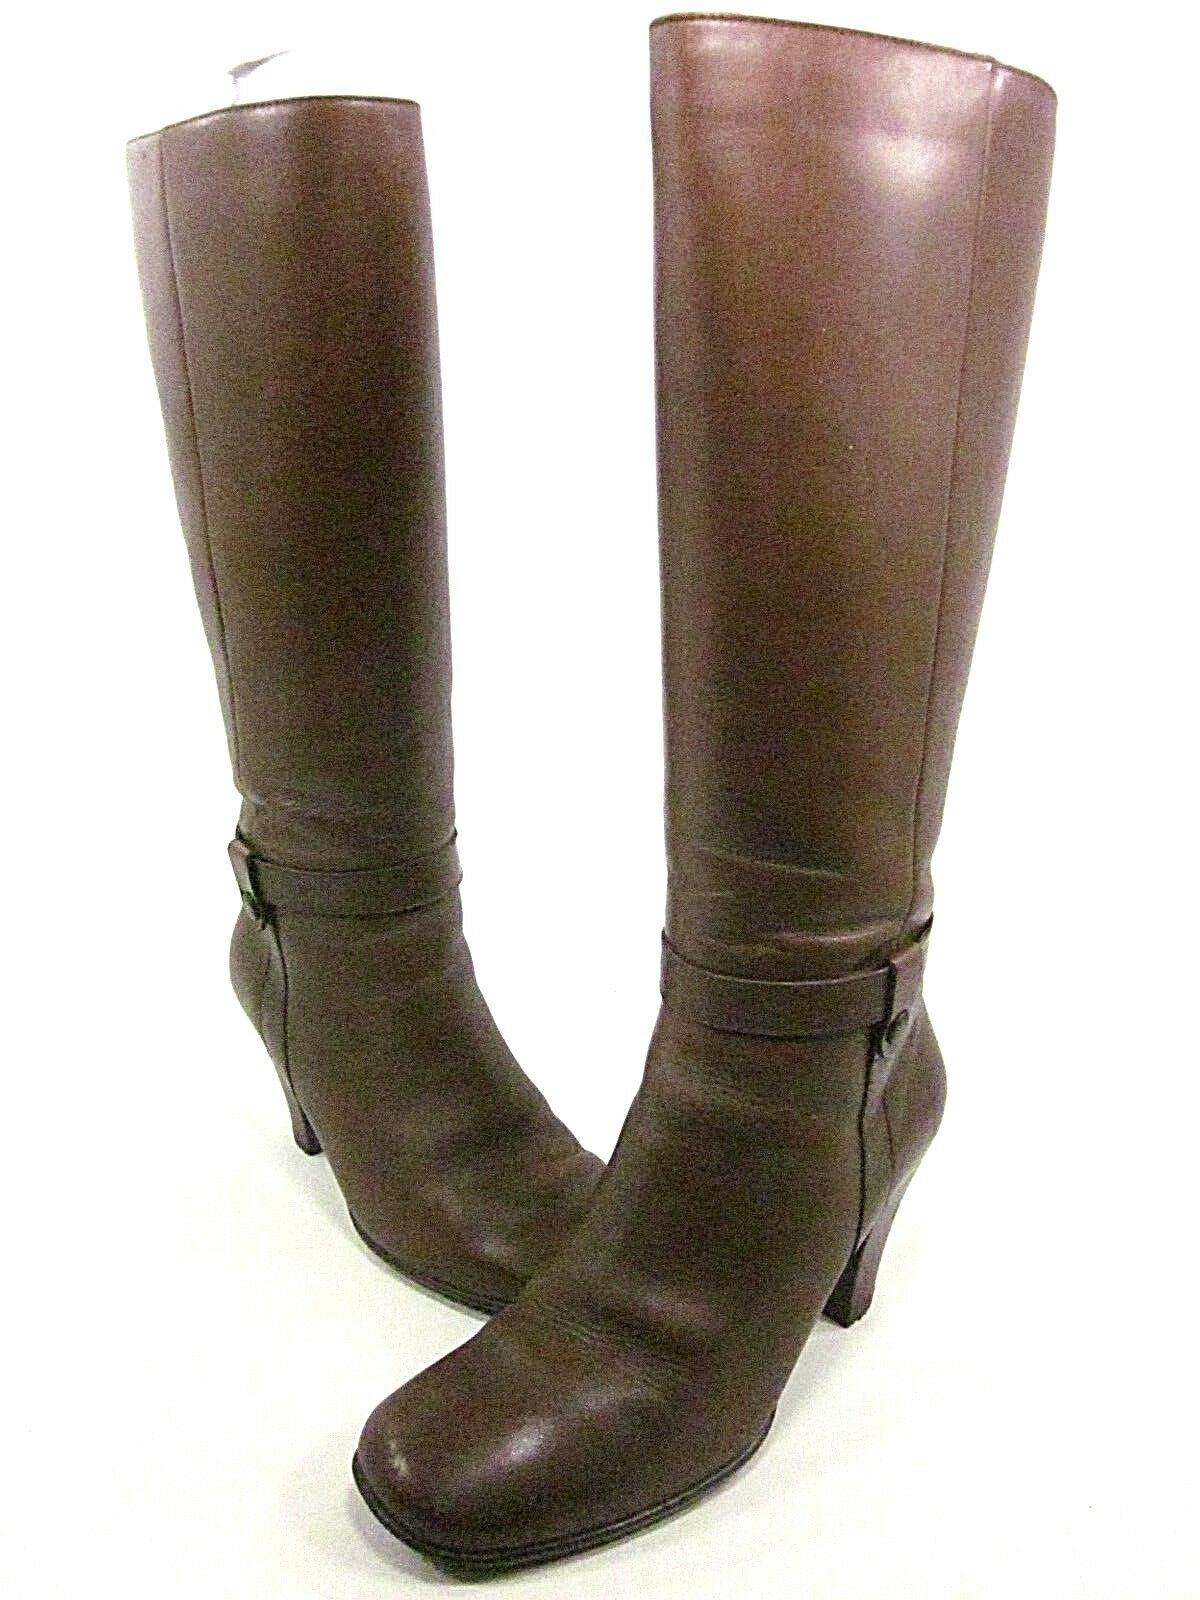 SANTANA, SYDNEY BOOT, WOMENS, COFFEE, US 7.5M, LEATHER, PRE/OWNED